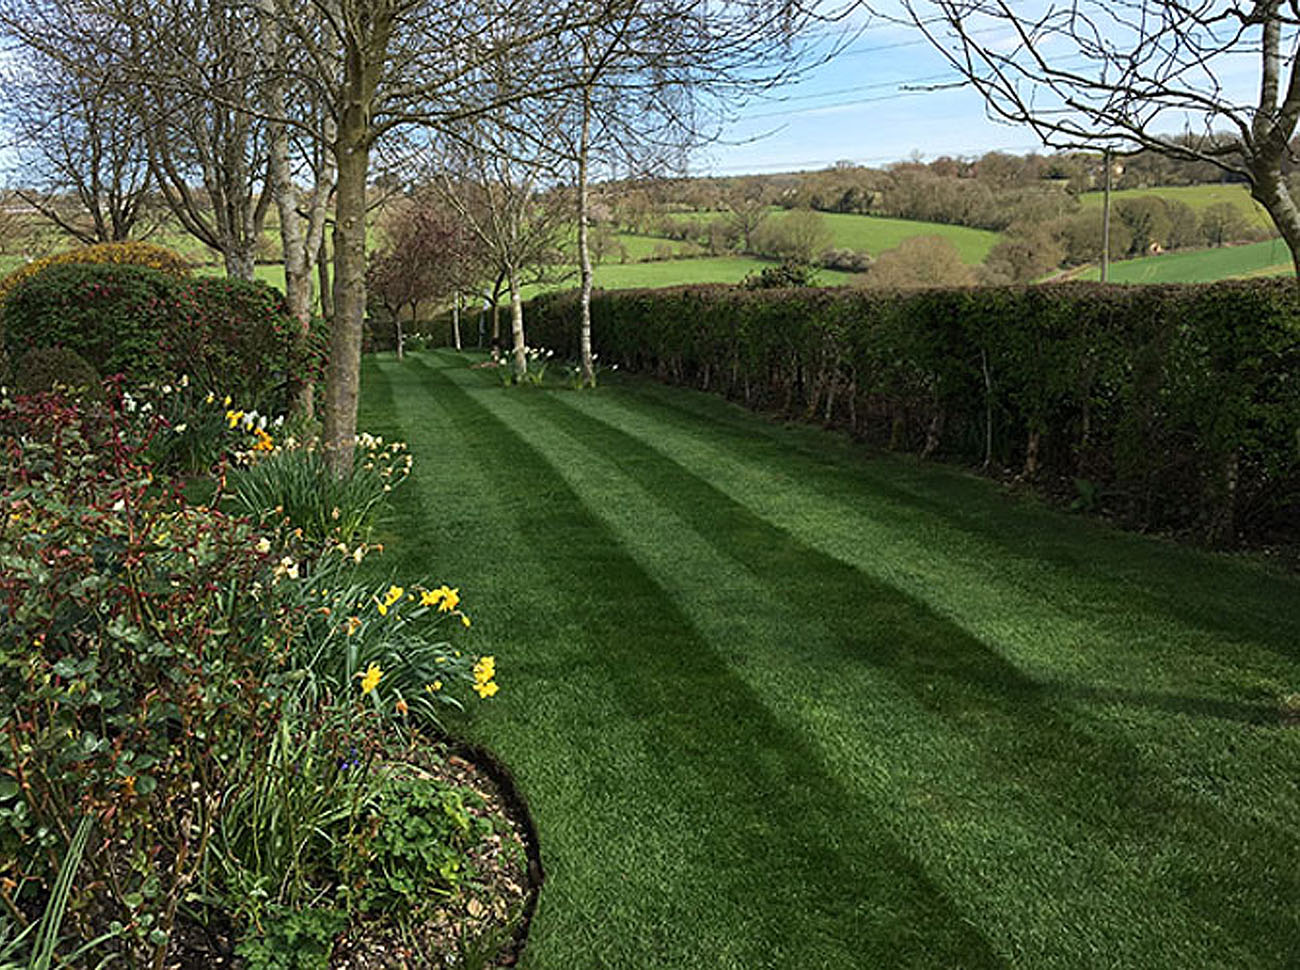 Grass cutting and lawn mowing services for residential and commercial properties in buckinghamshire, bedfordshire and hertfordshire including pest control, hedge cutting, tree maintenance and wild flower planting